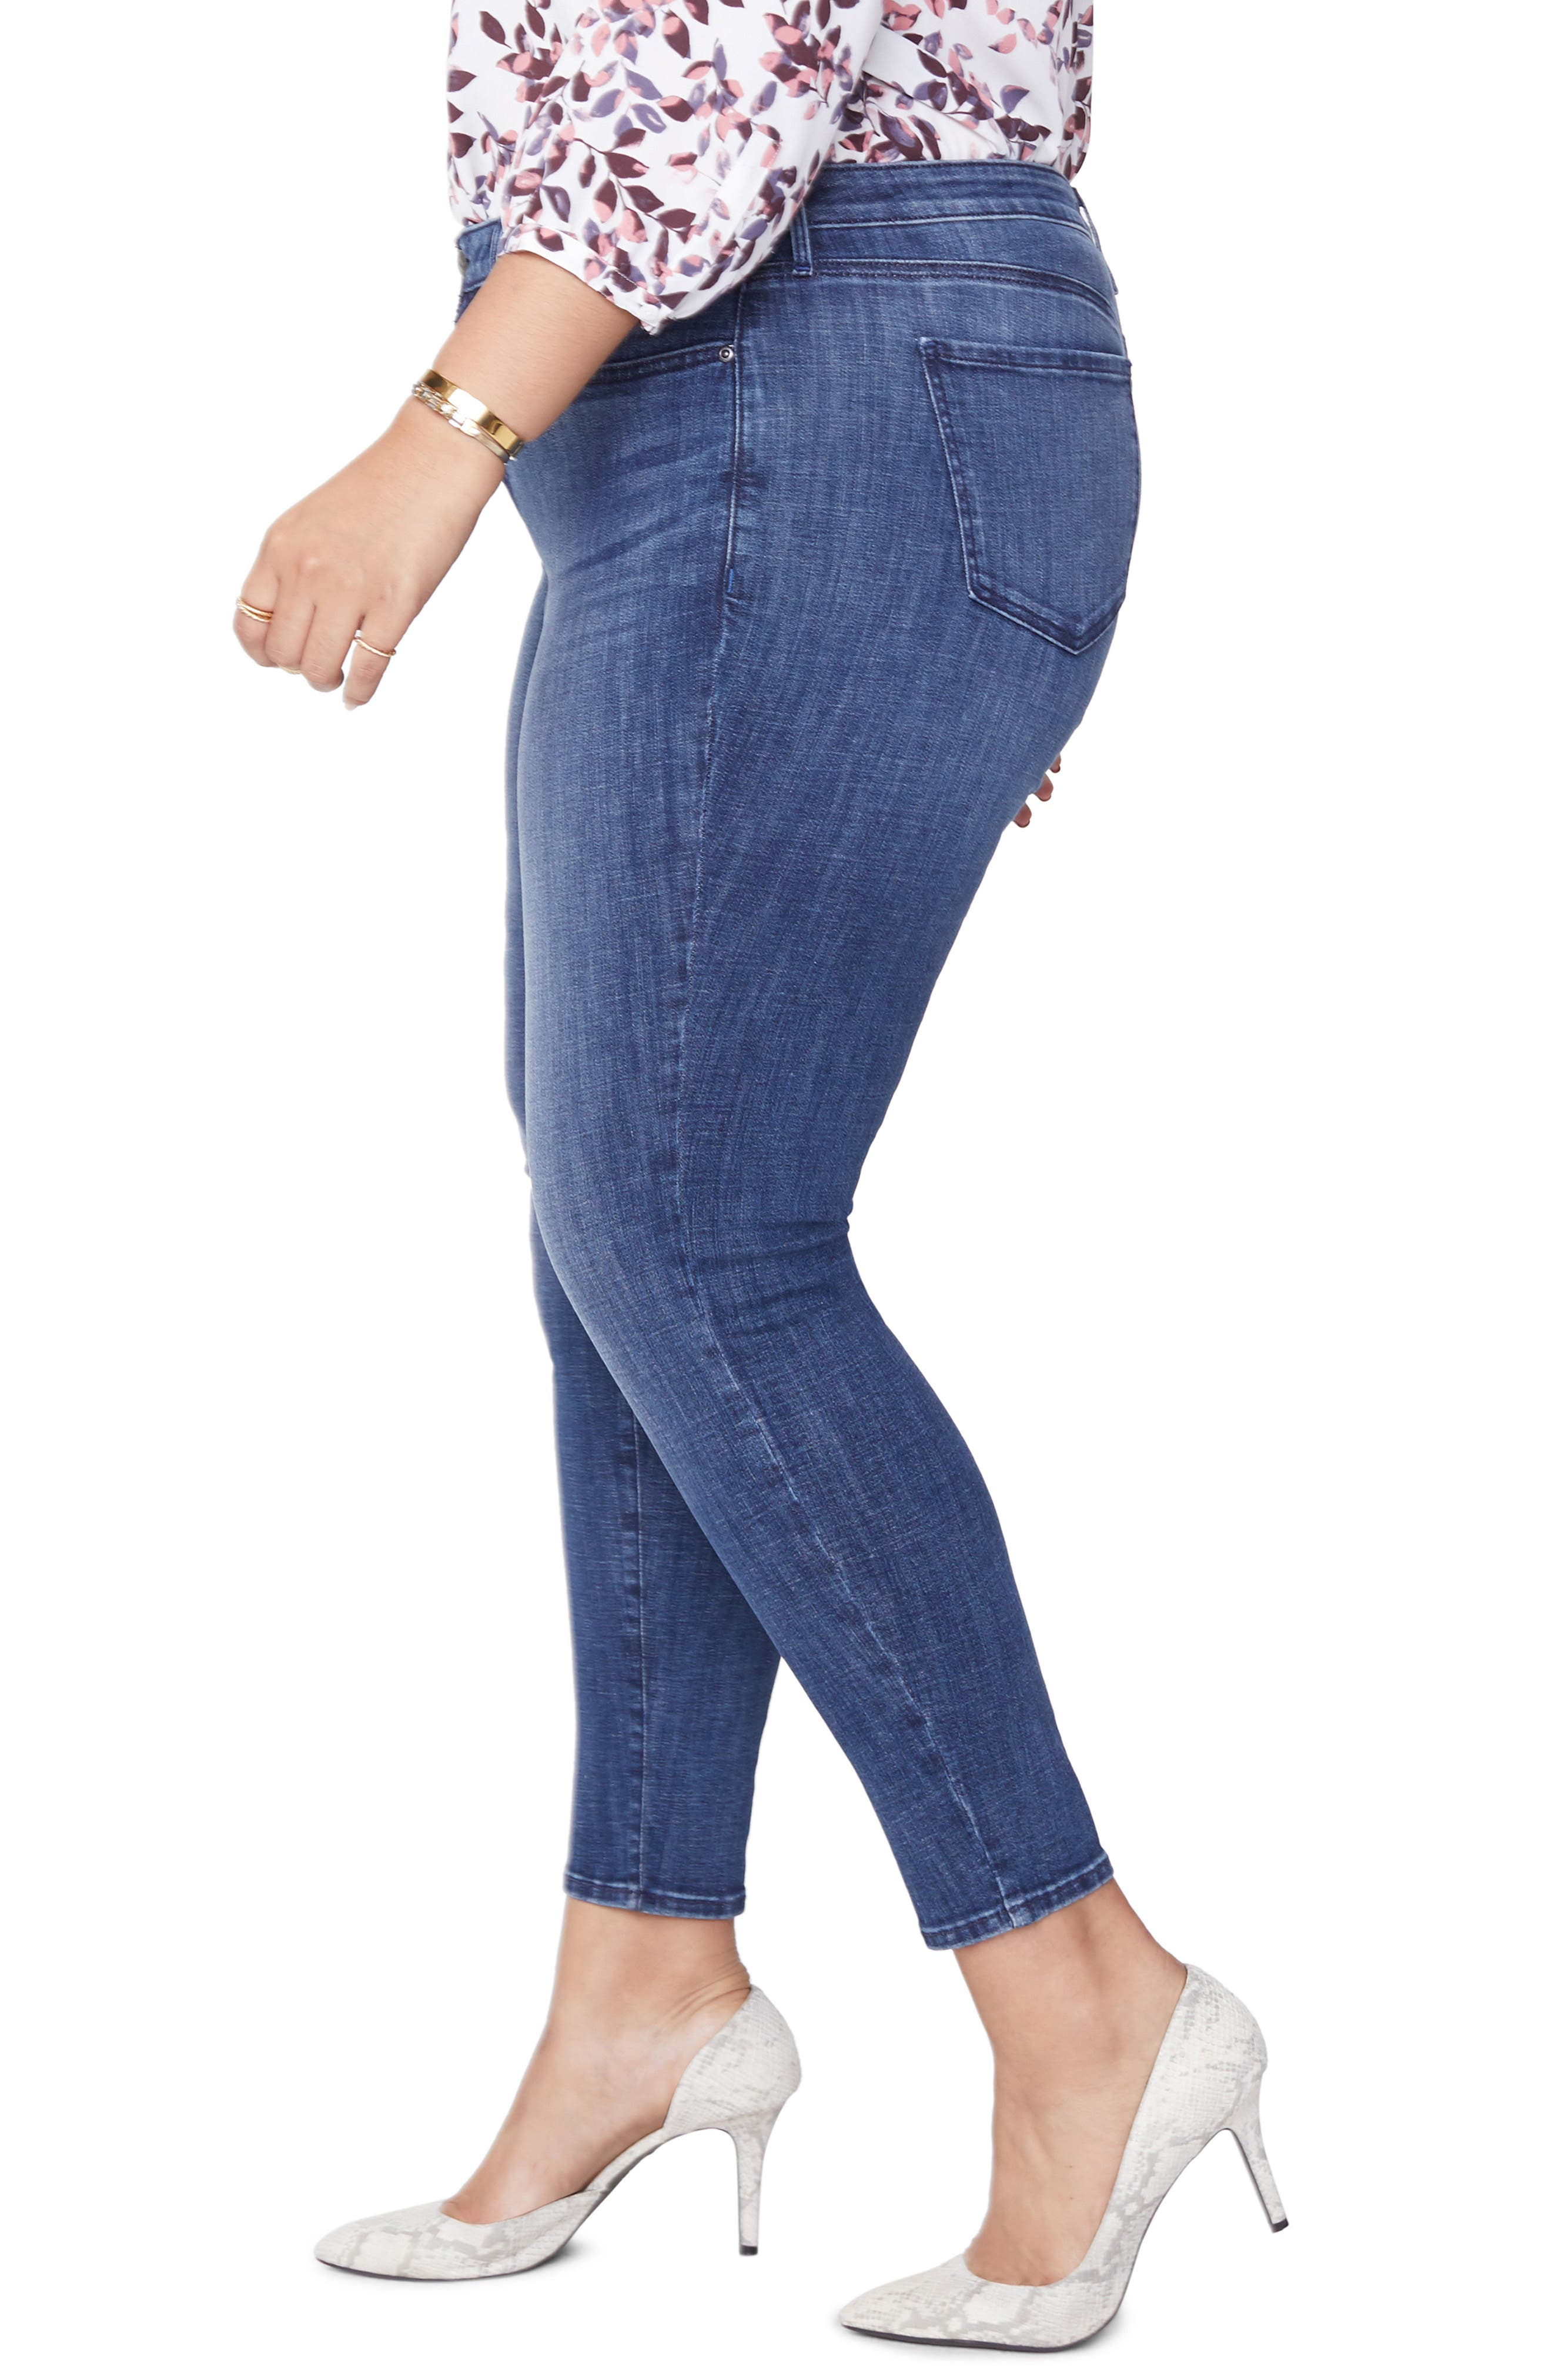 Ami Skinny Jeans,                             Alternate thumbnail 3, color,                             LUPINE